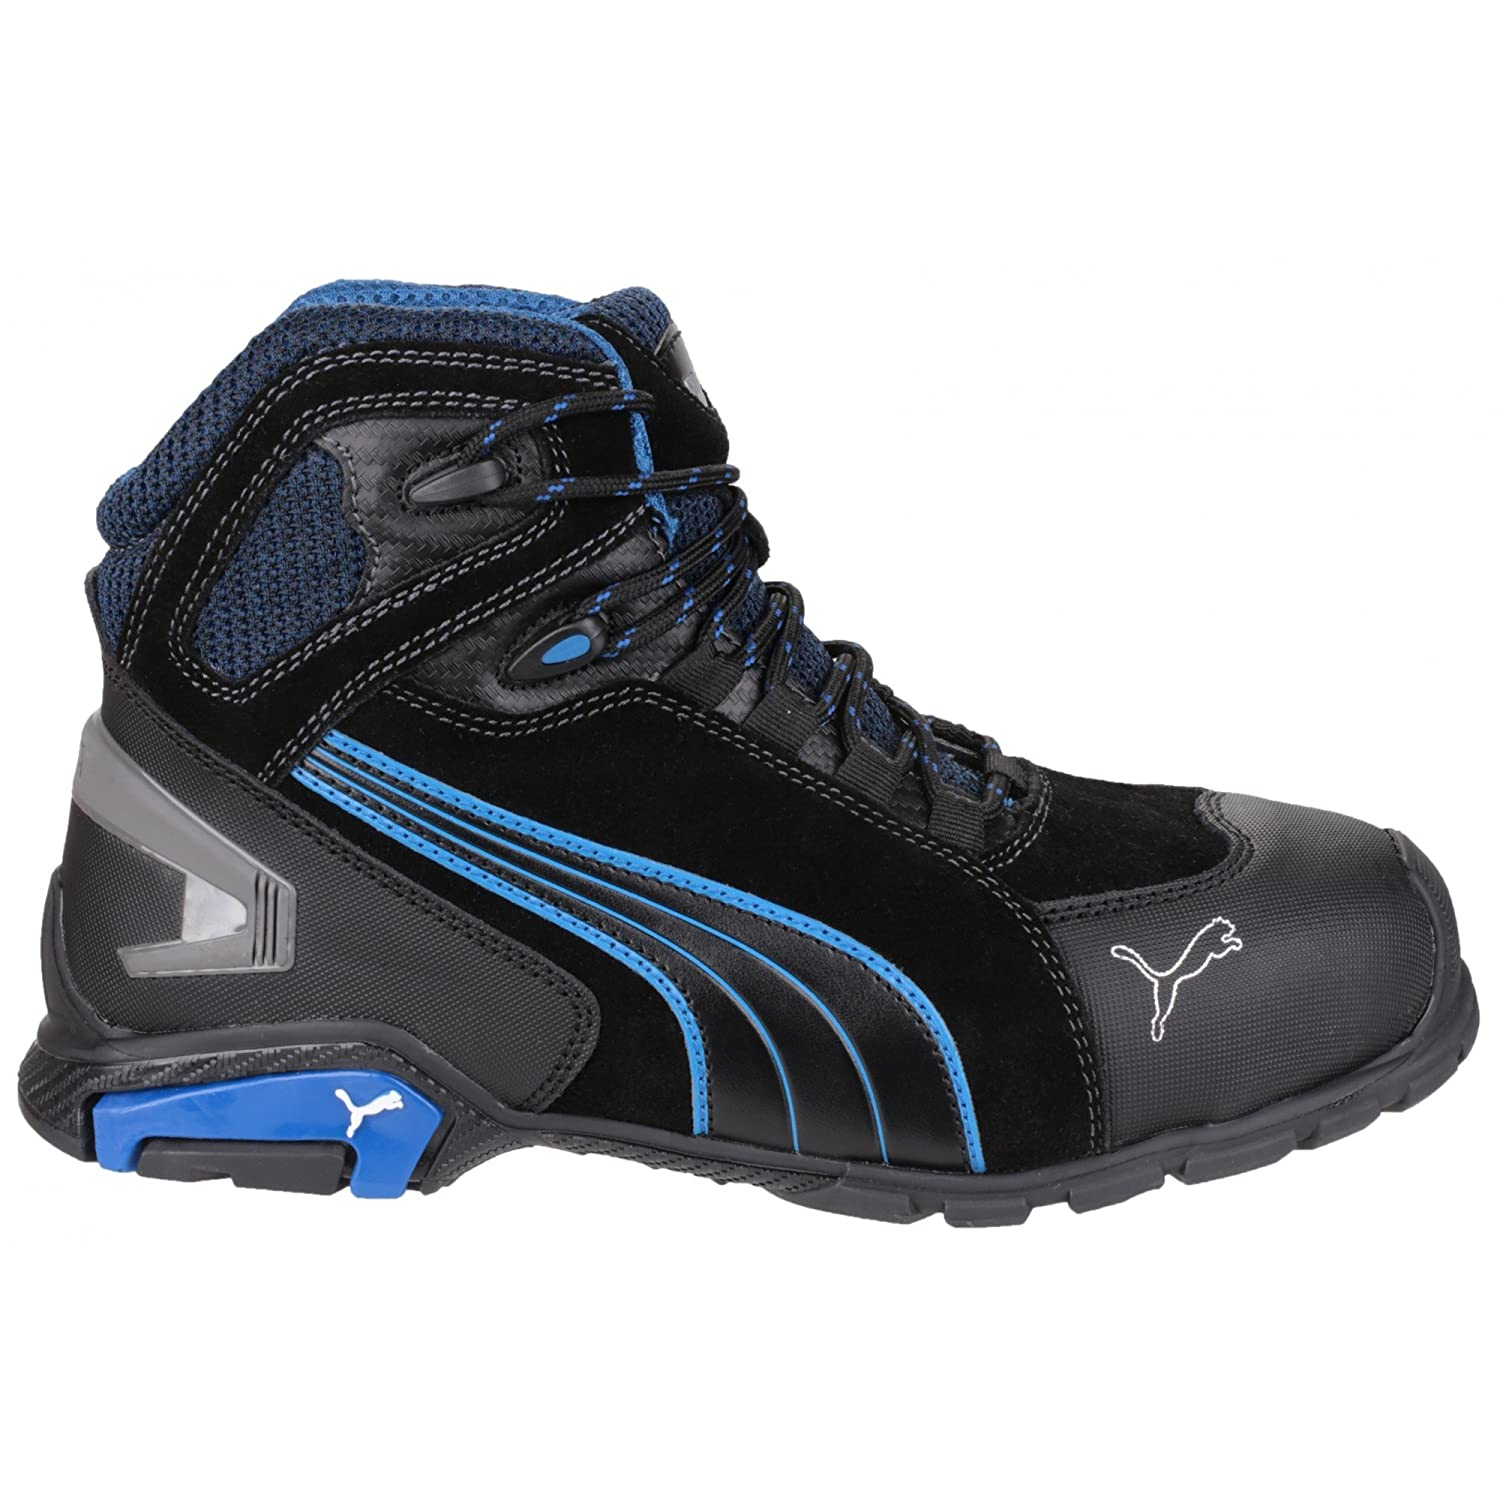 df77b68b359e0e Puma Safety Amsterdam Mid Mens Safety Boots  Amazon.co.uk  Shoes   Bags